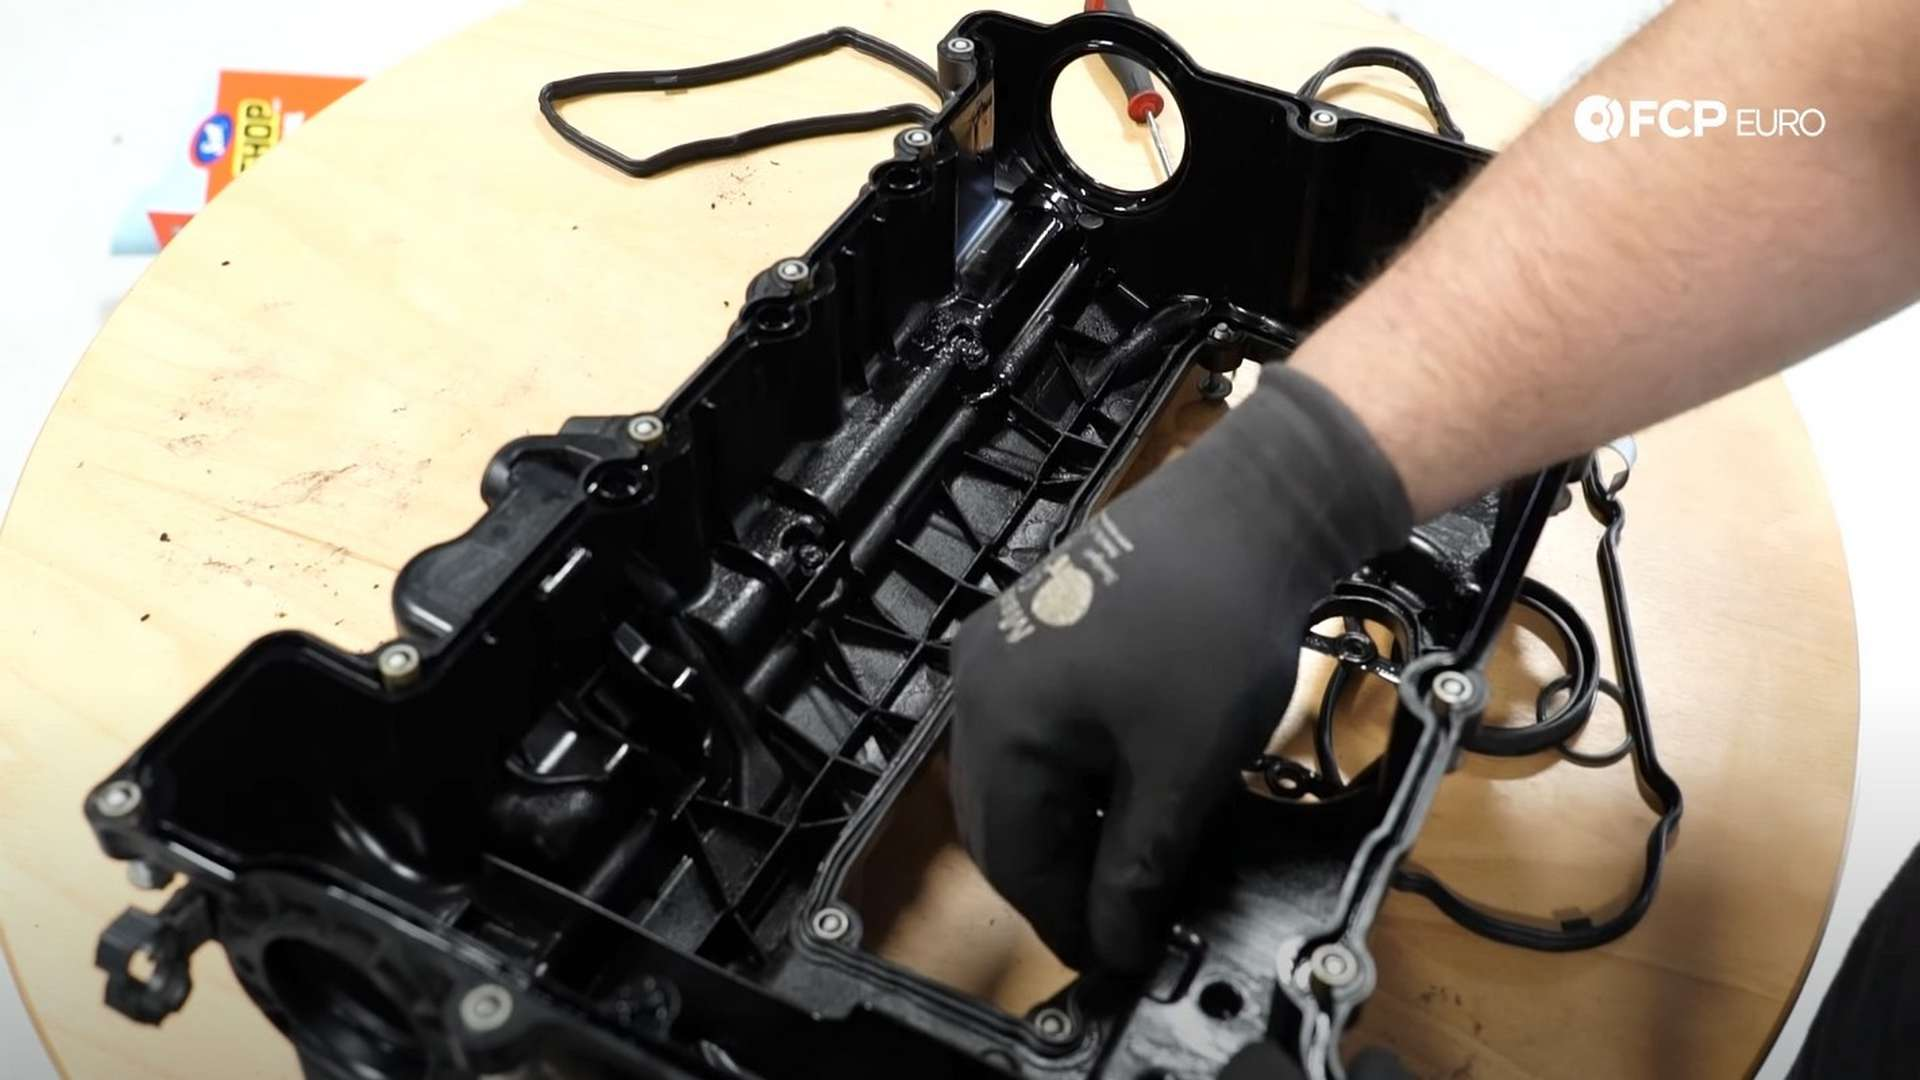 How To Replace A BMW N20 Or N26 Valve Cover Gasket (BMW F30)